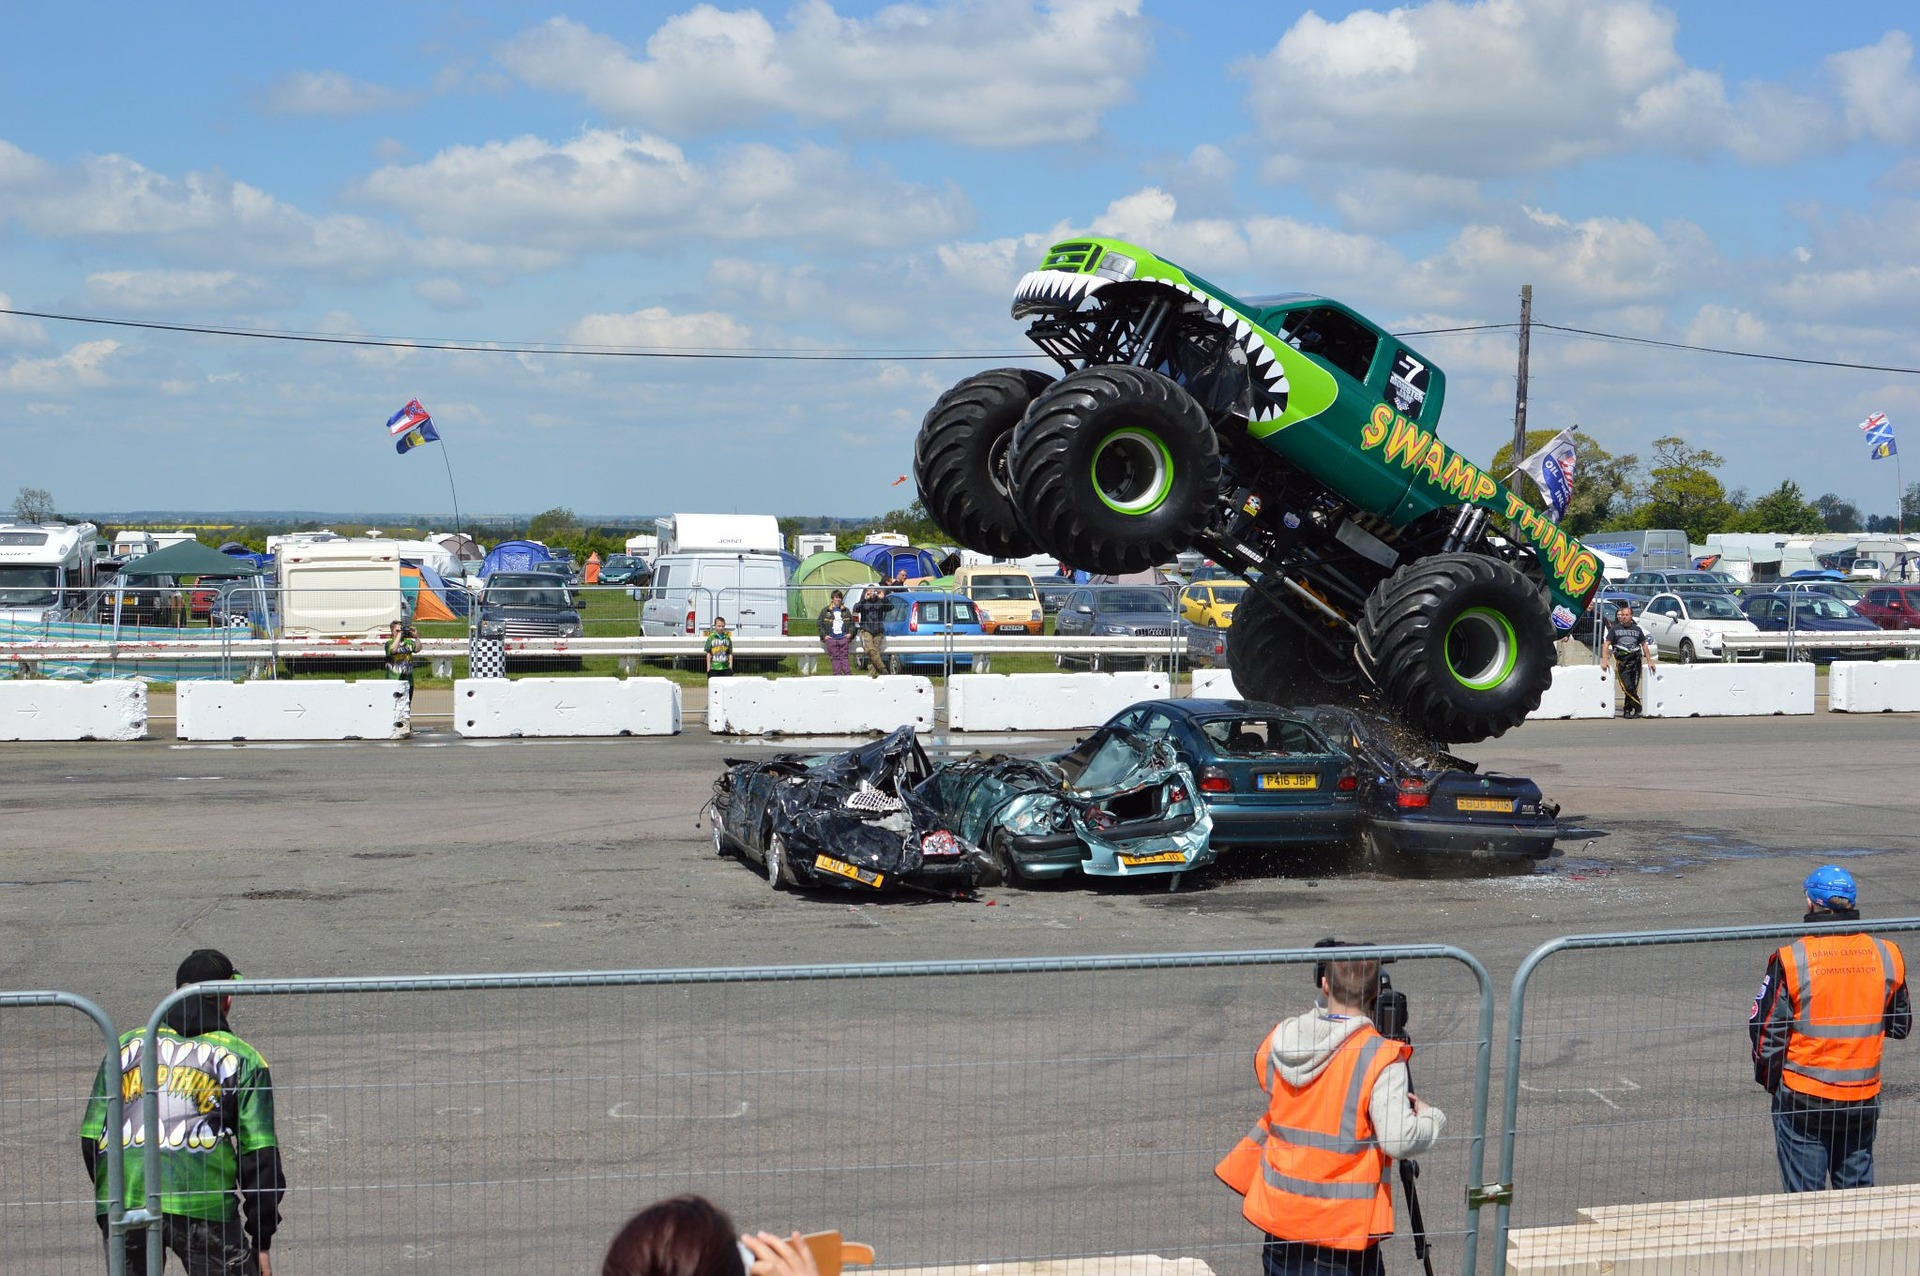 Der Monster Truck Film